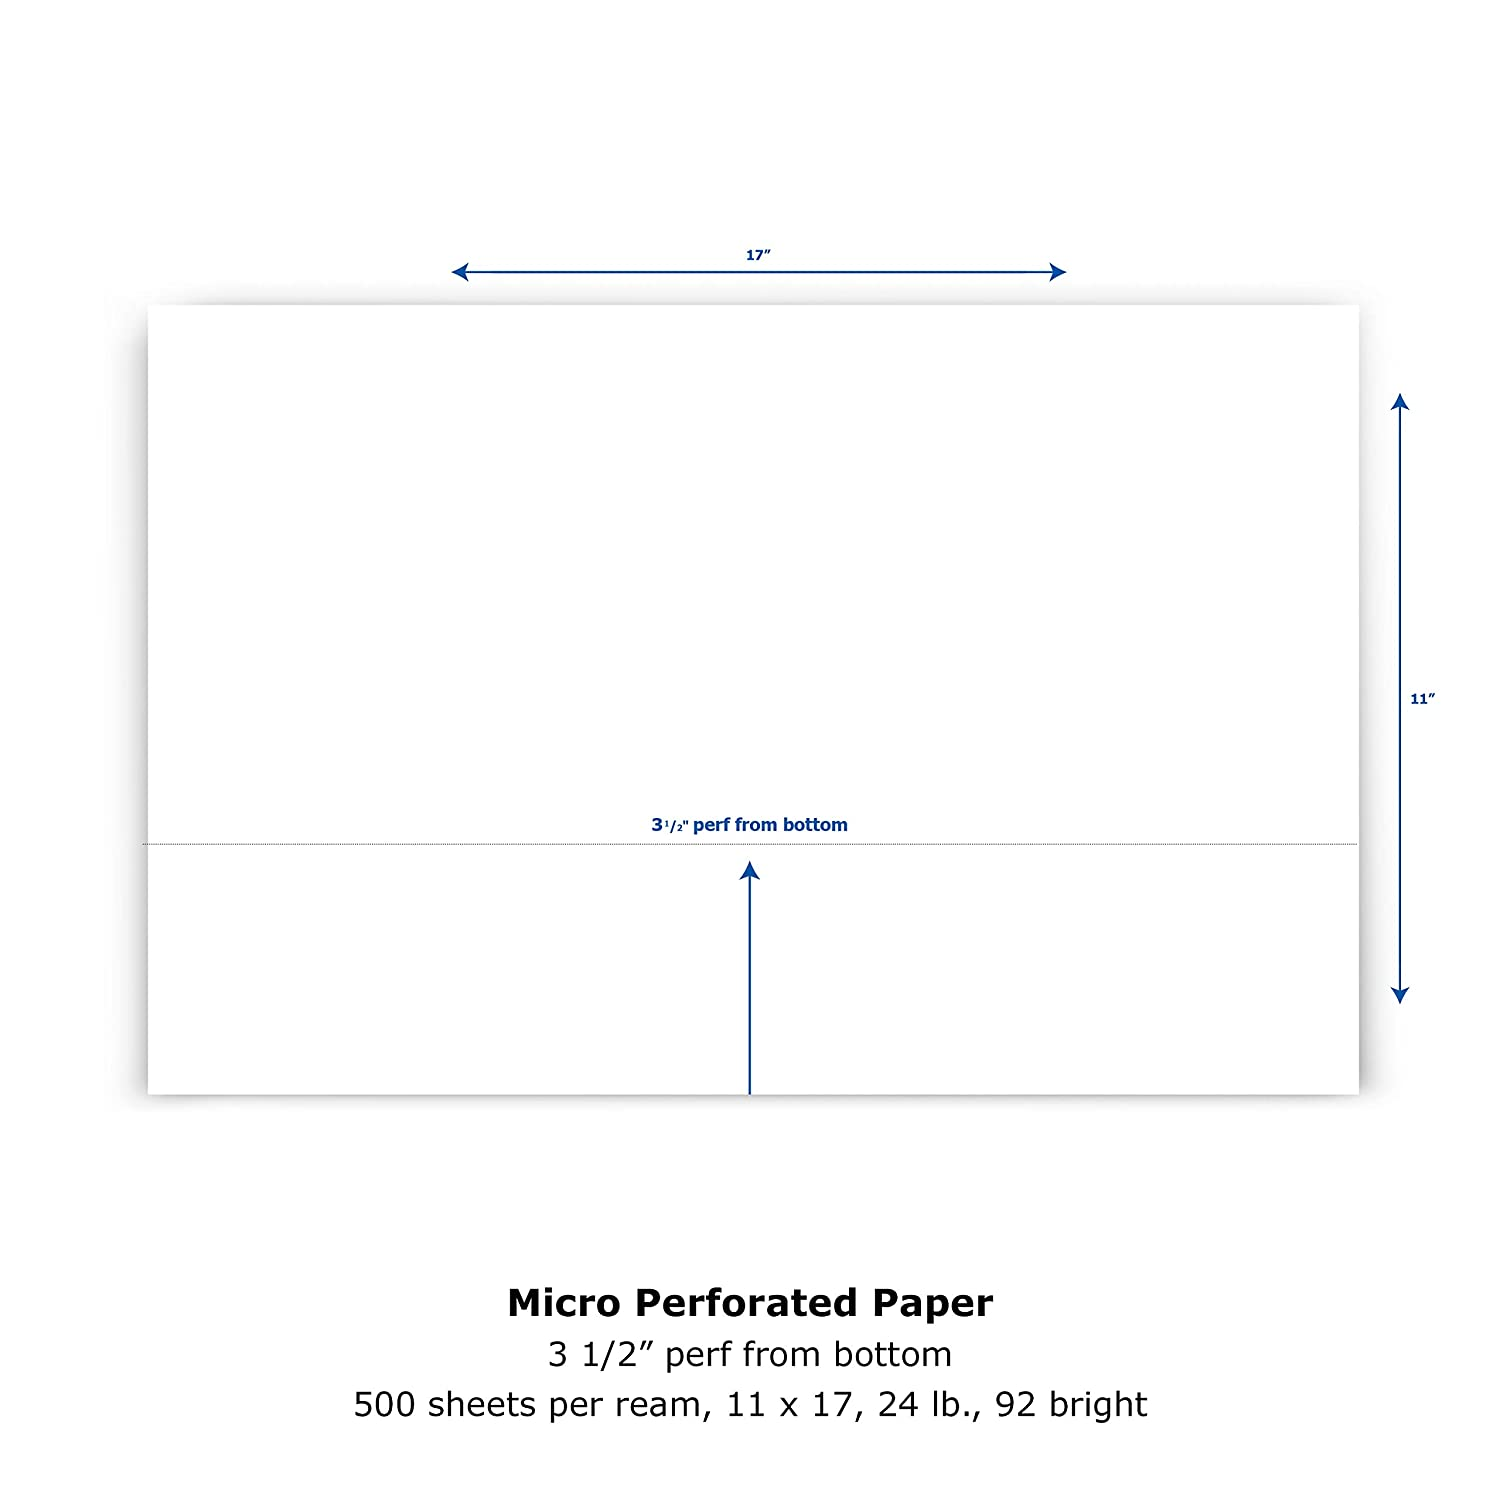 printworks professional perforated paper for statements invoices gift certificates coupons and more 85 x 14